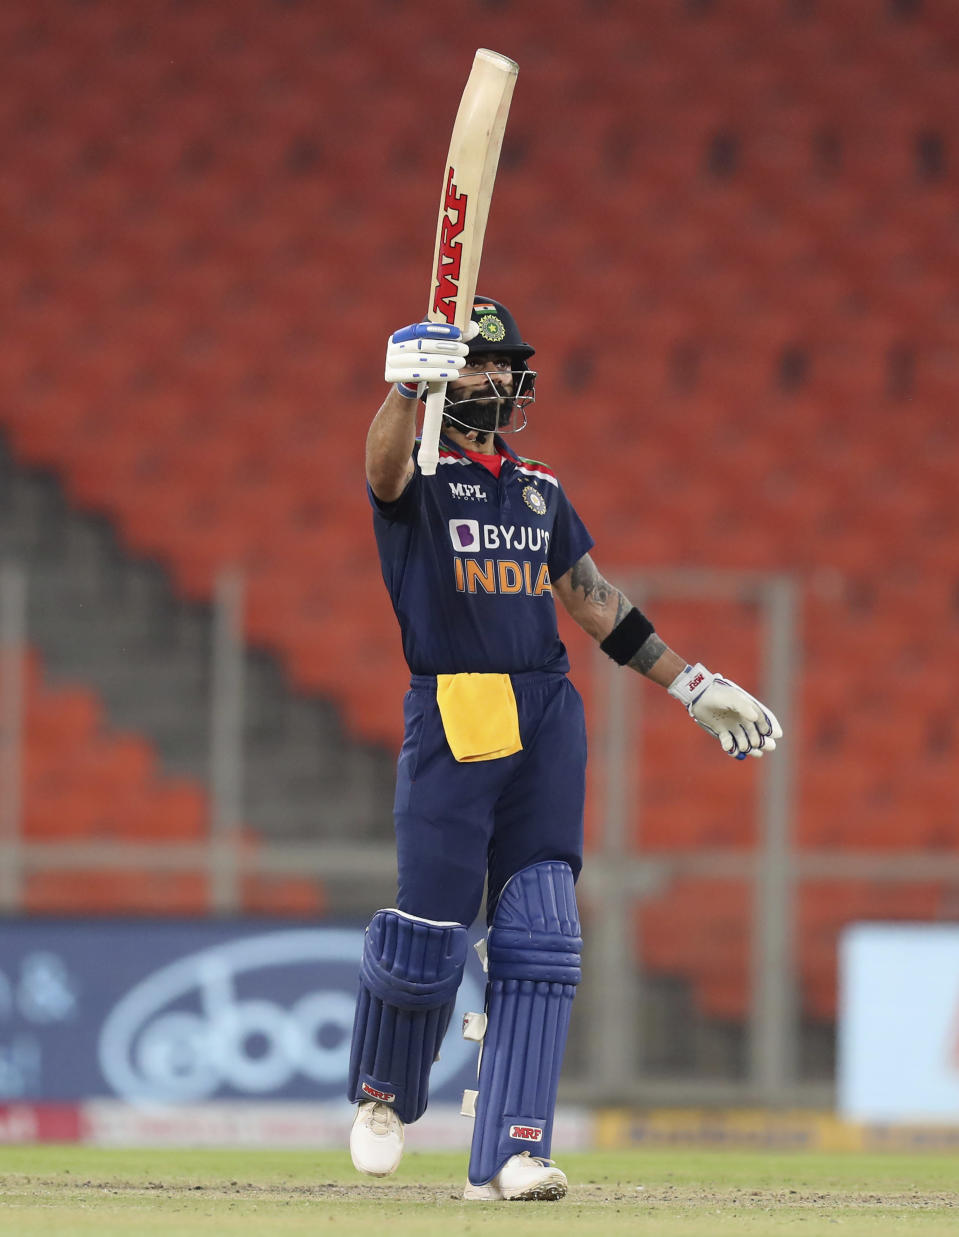 India's captain Virat Kohli raises his bat to celebrate scoring fifty runs during the fifth Twenty20 cricket match between India and England at Narendra Modi Stadium in Ahmedabad, India, Saturday, March 20, 2021. (AP Photo/Ajit Solanki)